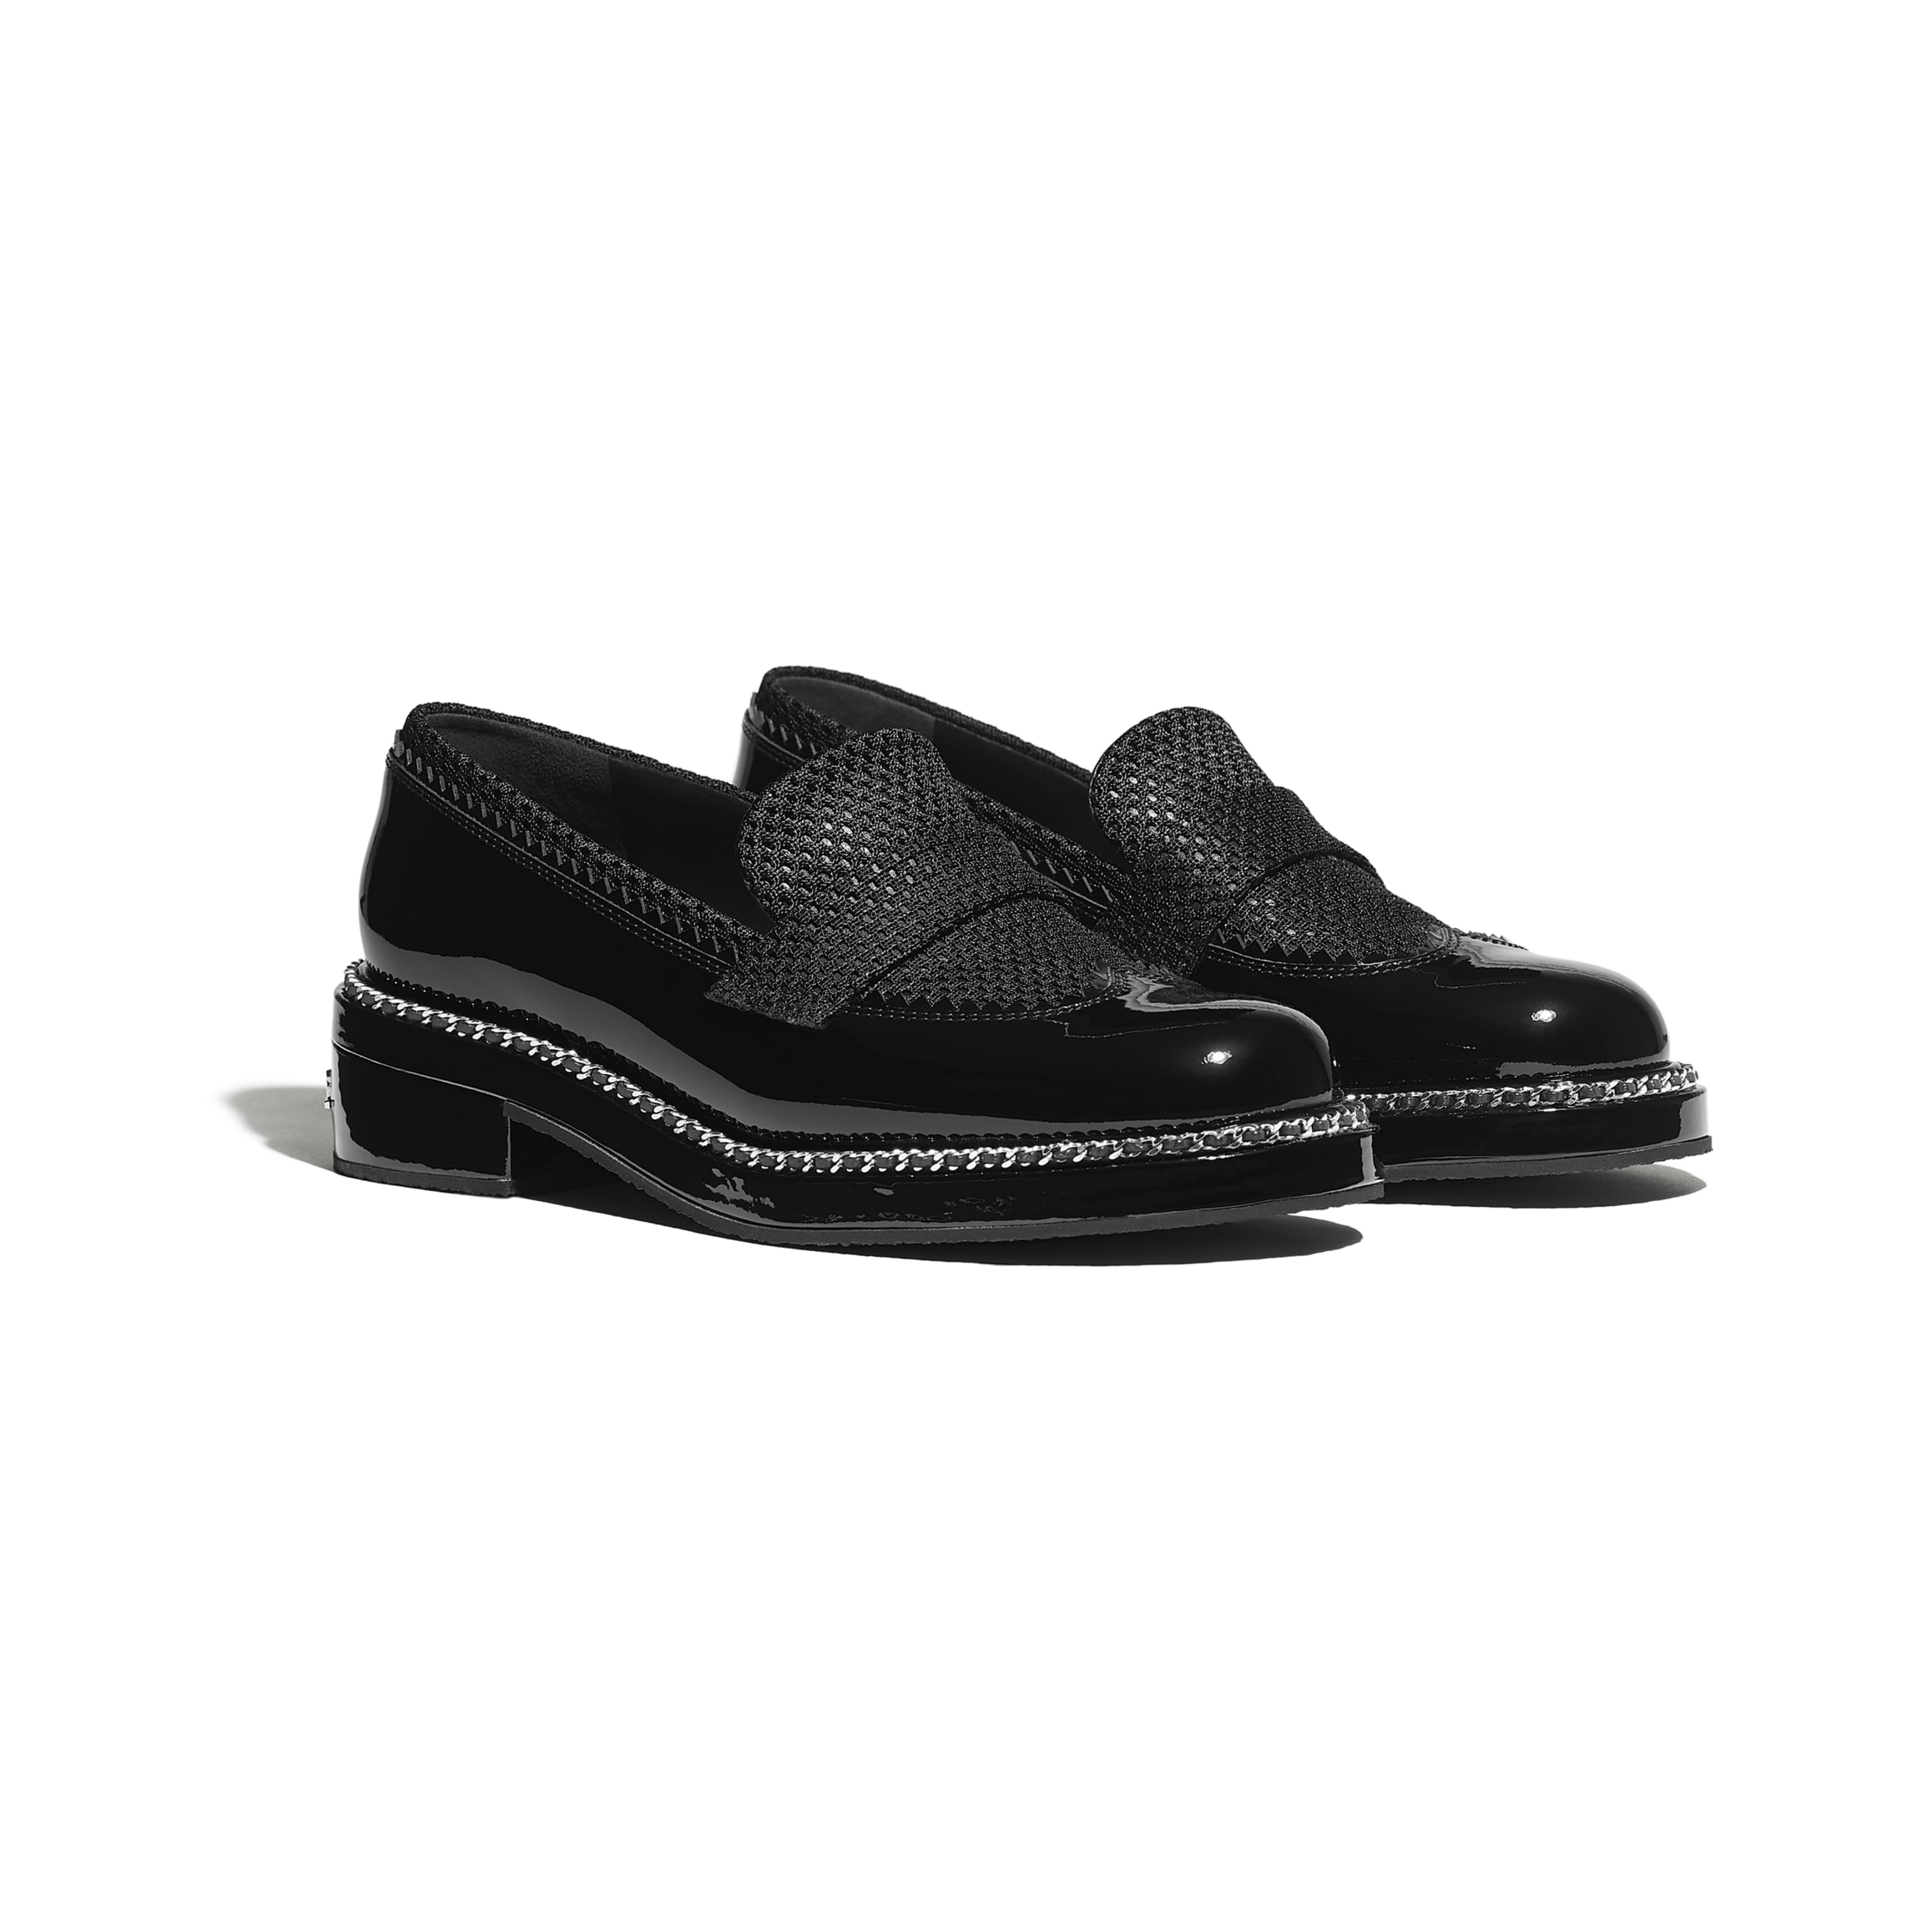 Loafers - Black - Patent Calfskin & Mixed Fibers - Alternative view - see standard sized version